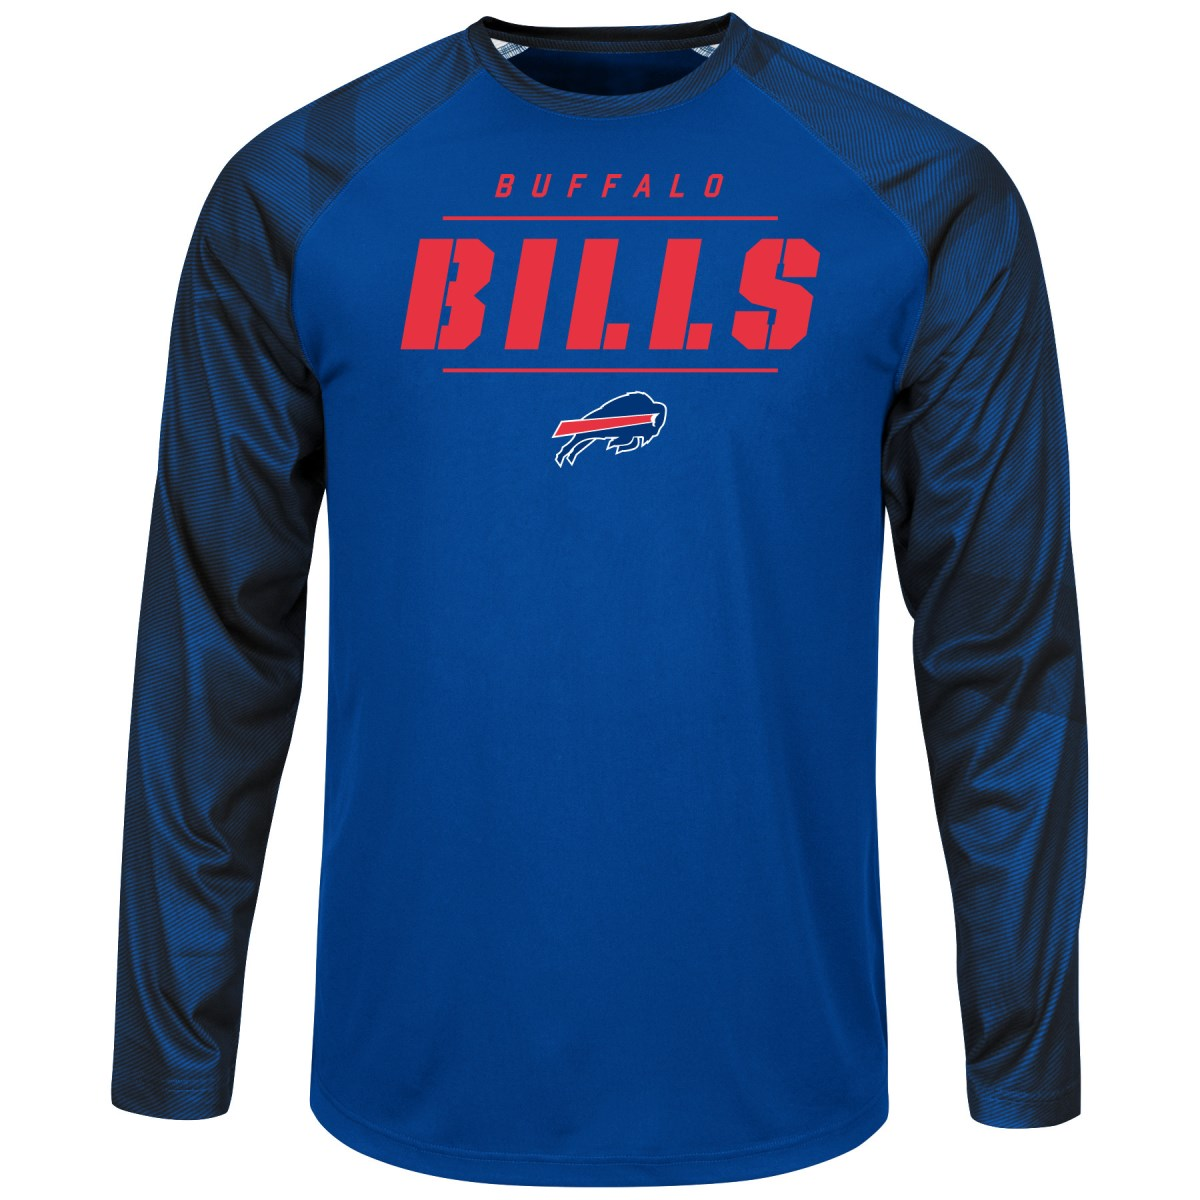 "Buffalo Bills Majestic NFL ""League Rival"" Men's Cool Base L S Shirt by Majestic"